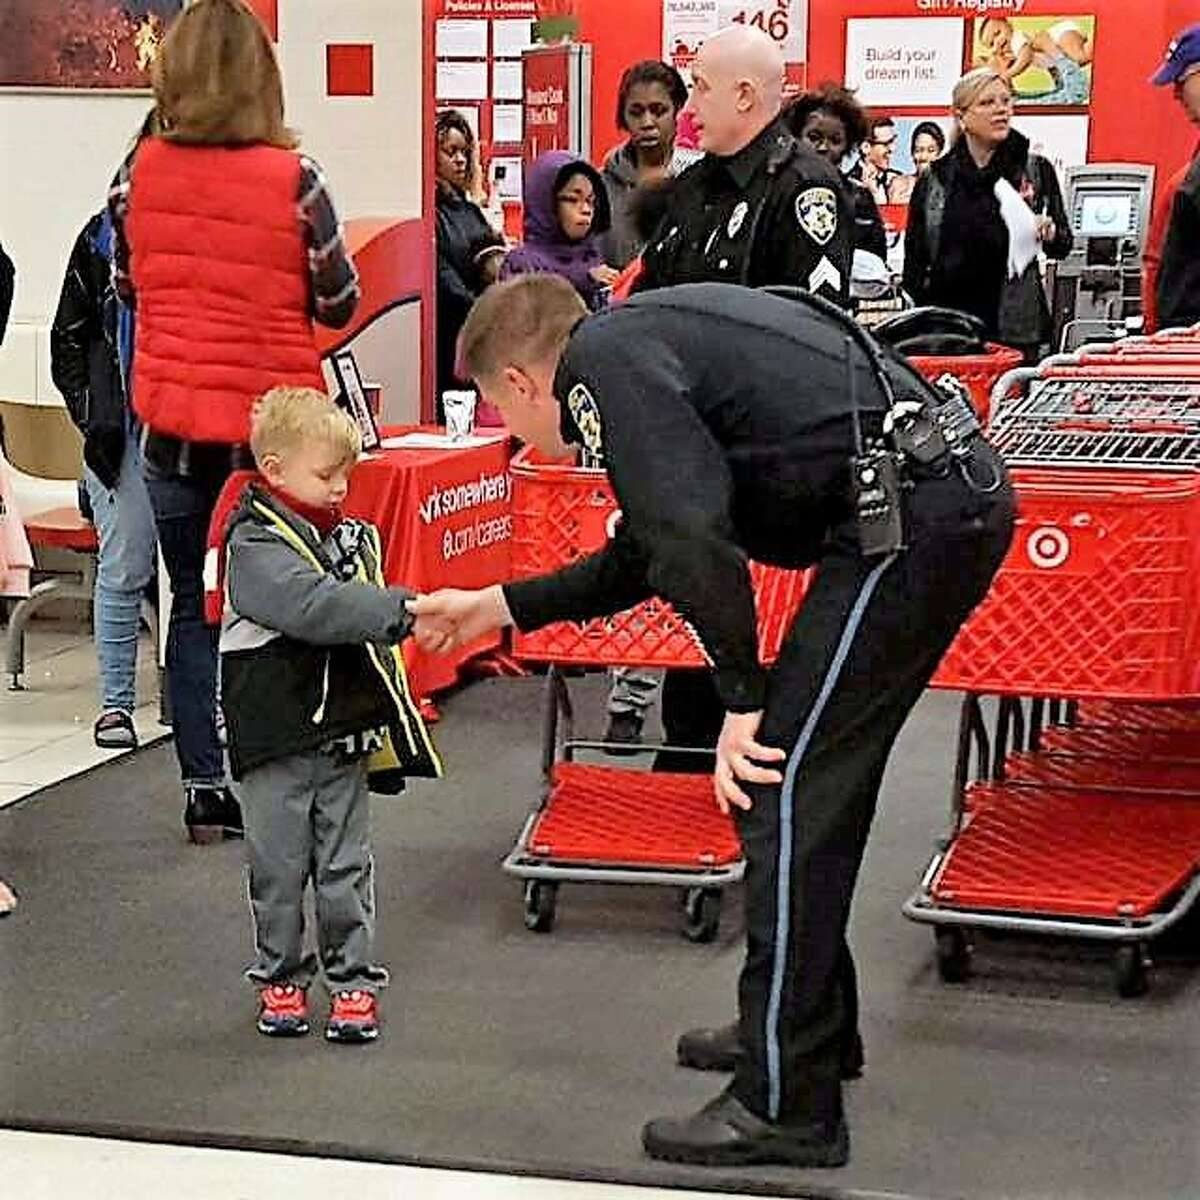 An Alton police officer greets a young student ready to shop at Target Saturday during this year's Shop with a Cop event. Members of the Police Benevolent and Protective Association Alton Unit 14 took children on a shopping spree for the annual outreach activity.